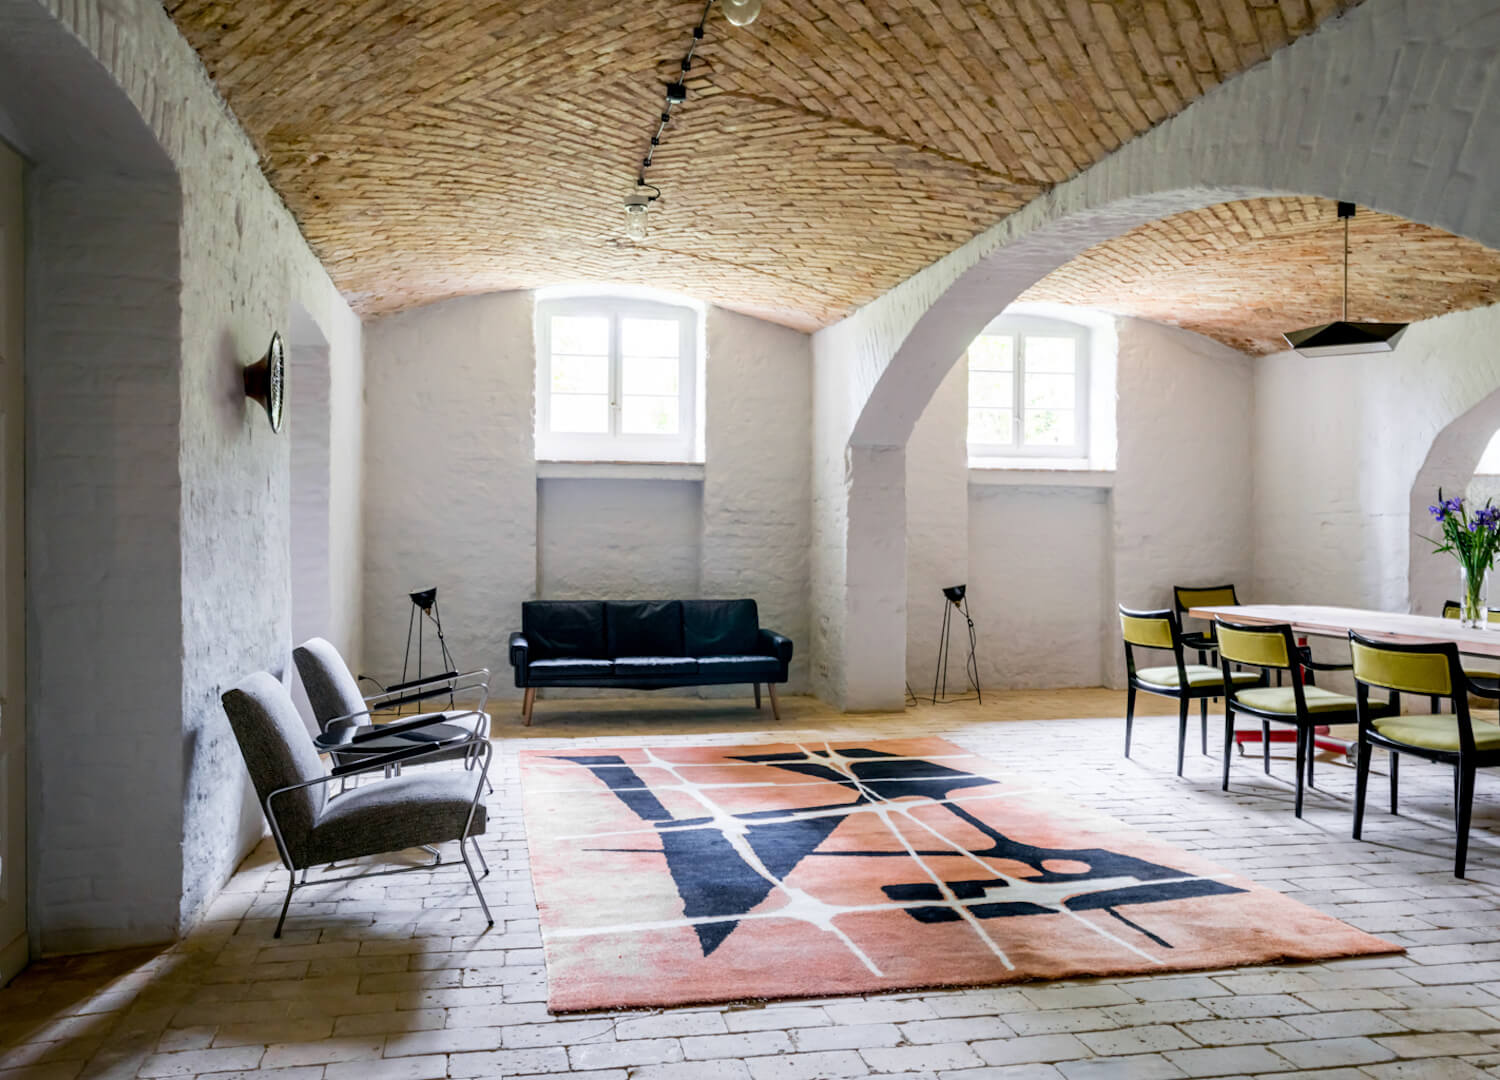 est living interiors berlin summer house loft kolasinkina 13